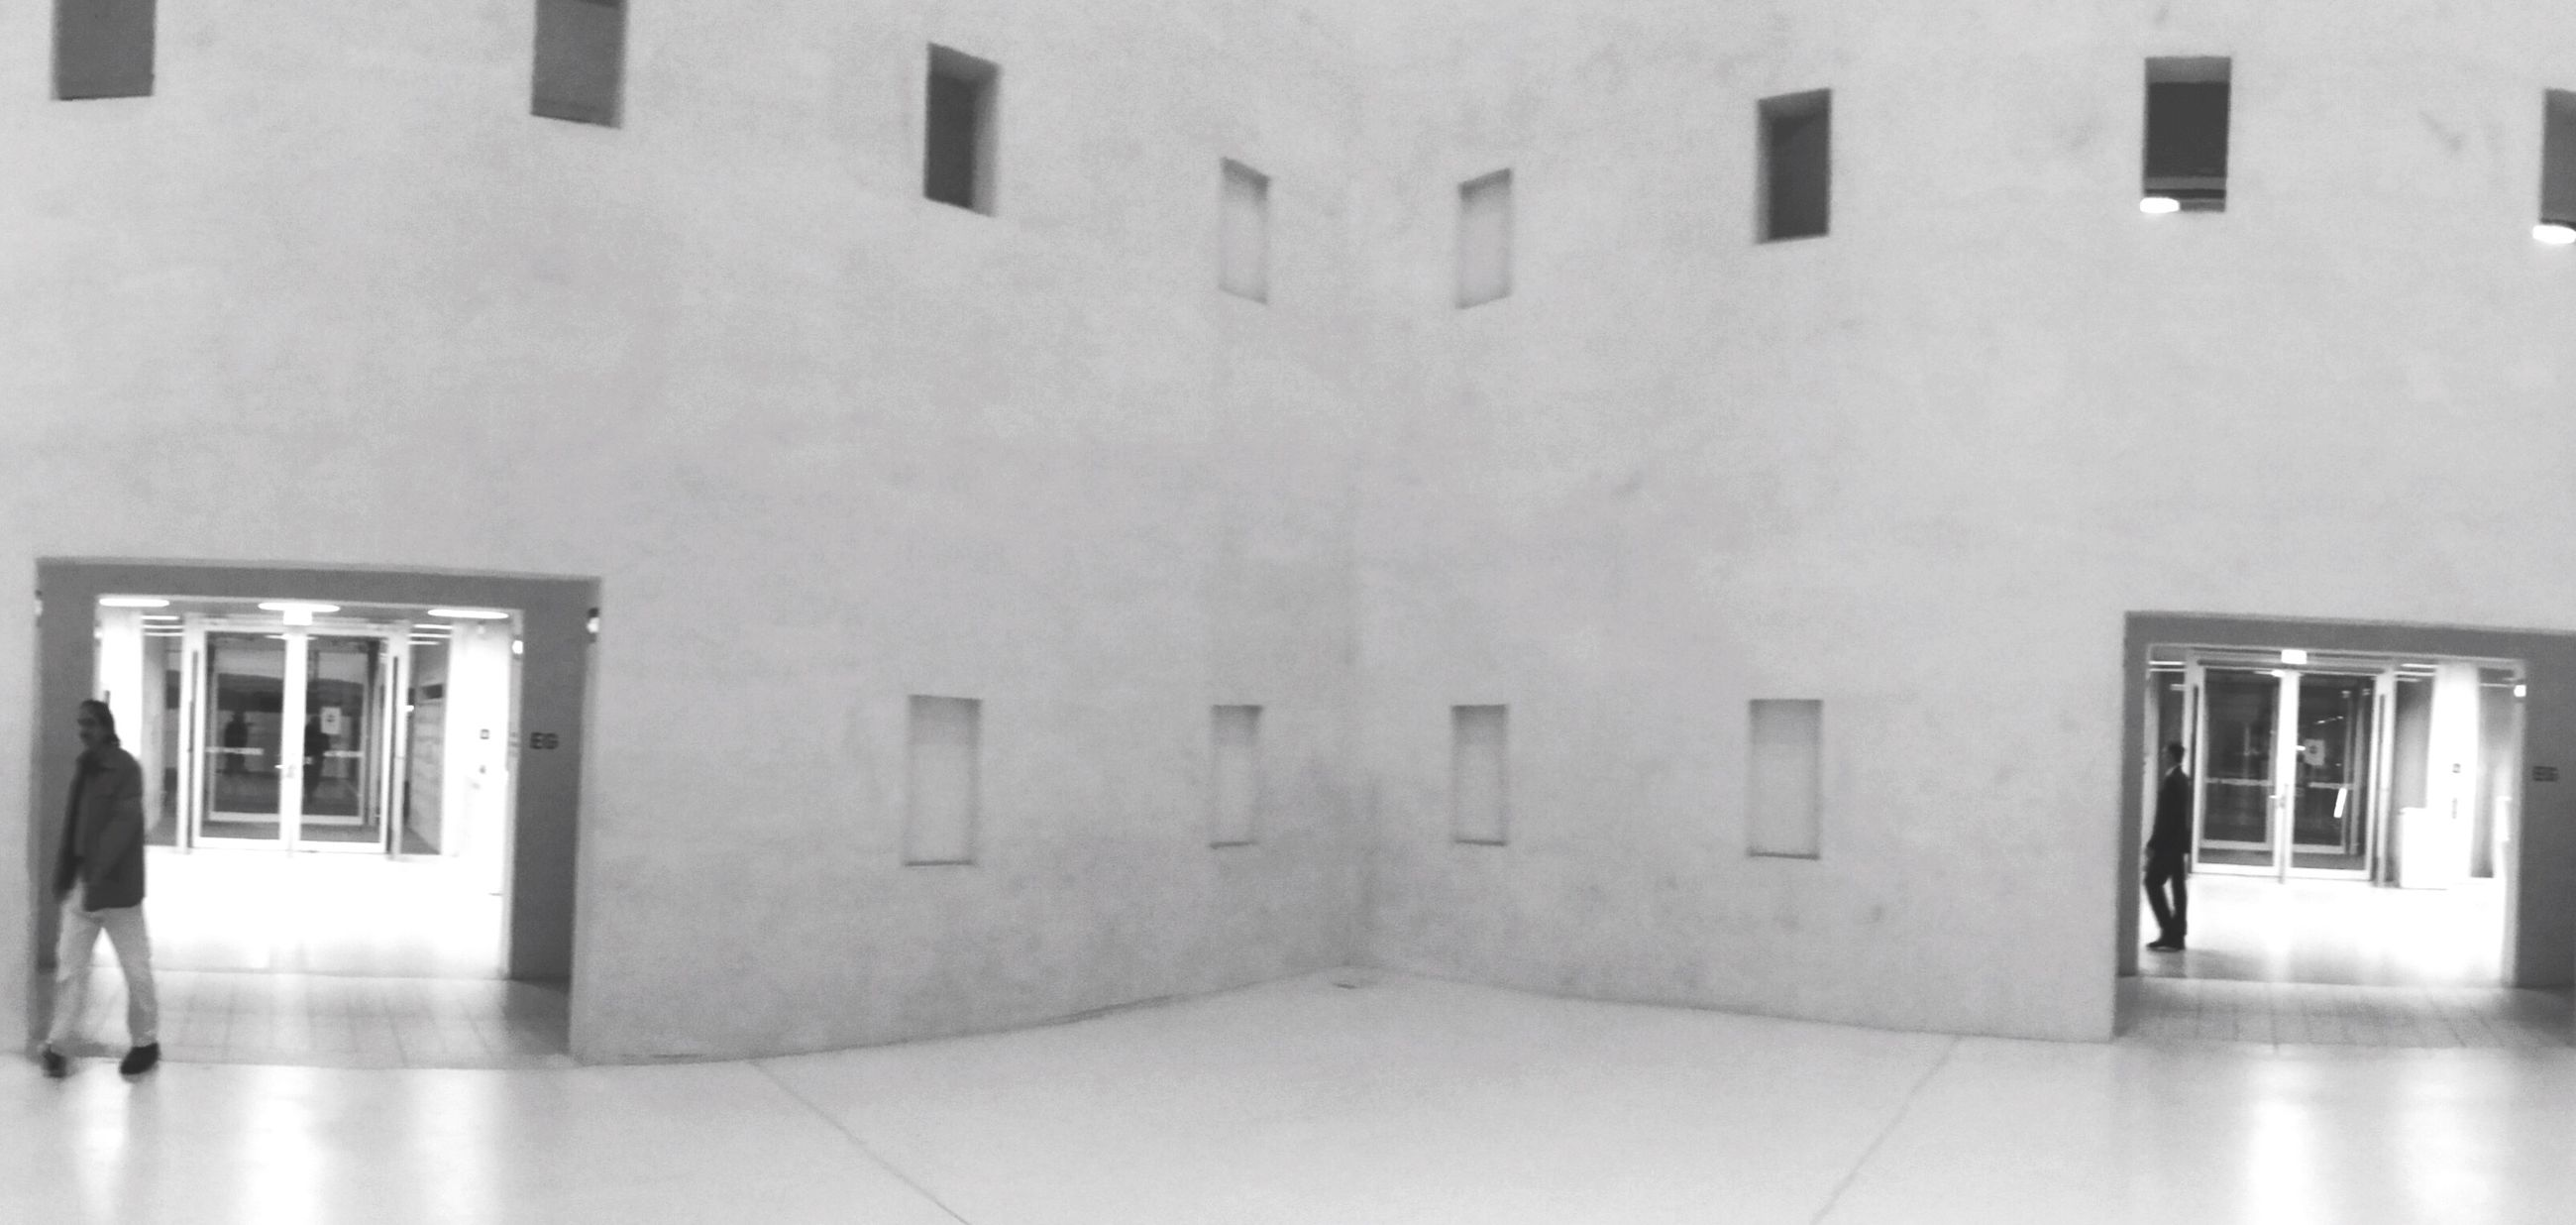 architecture, built structure, indoors, building exterior, no people, modern, illuminated, day